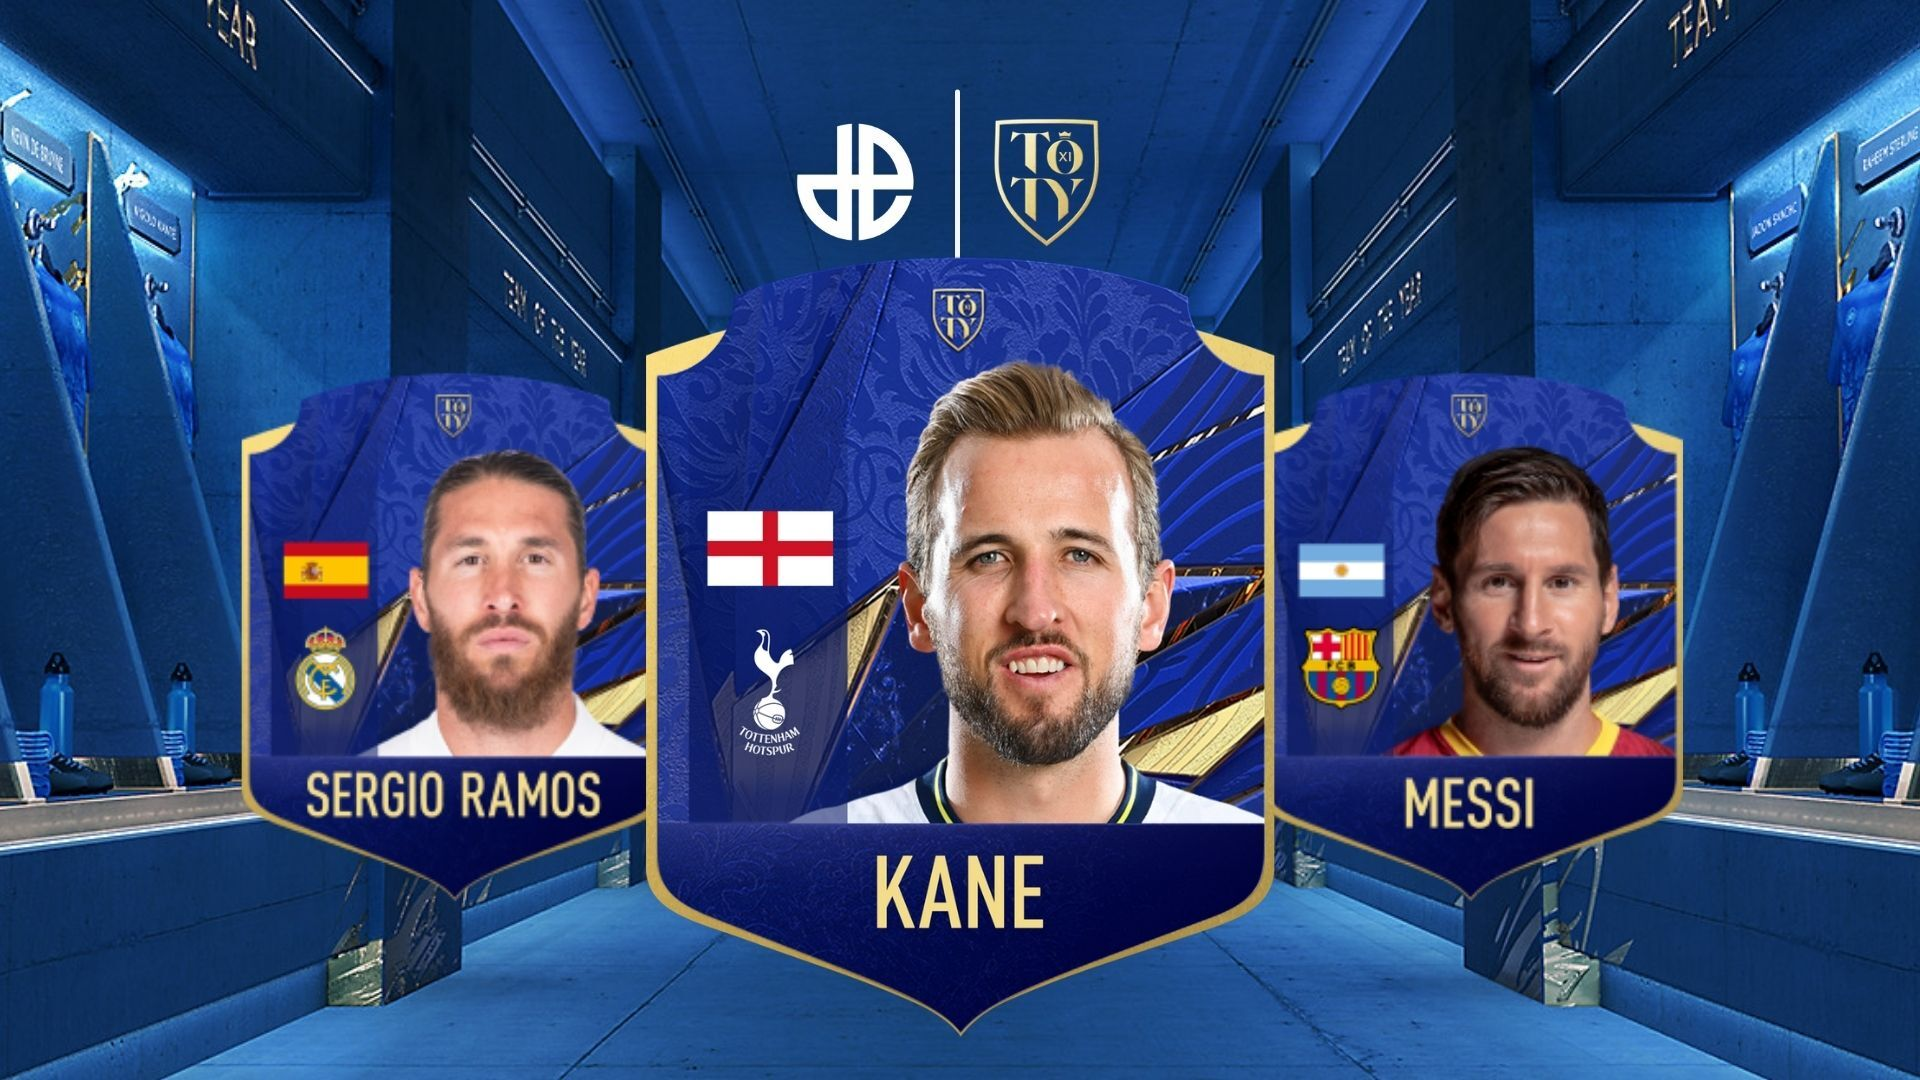 Messi, Ramos and Kane TOTY 21 Fifa